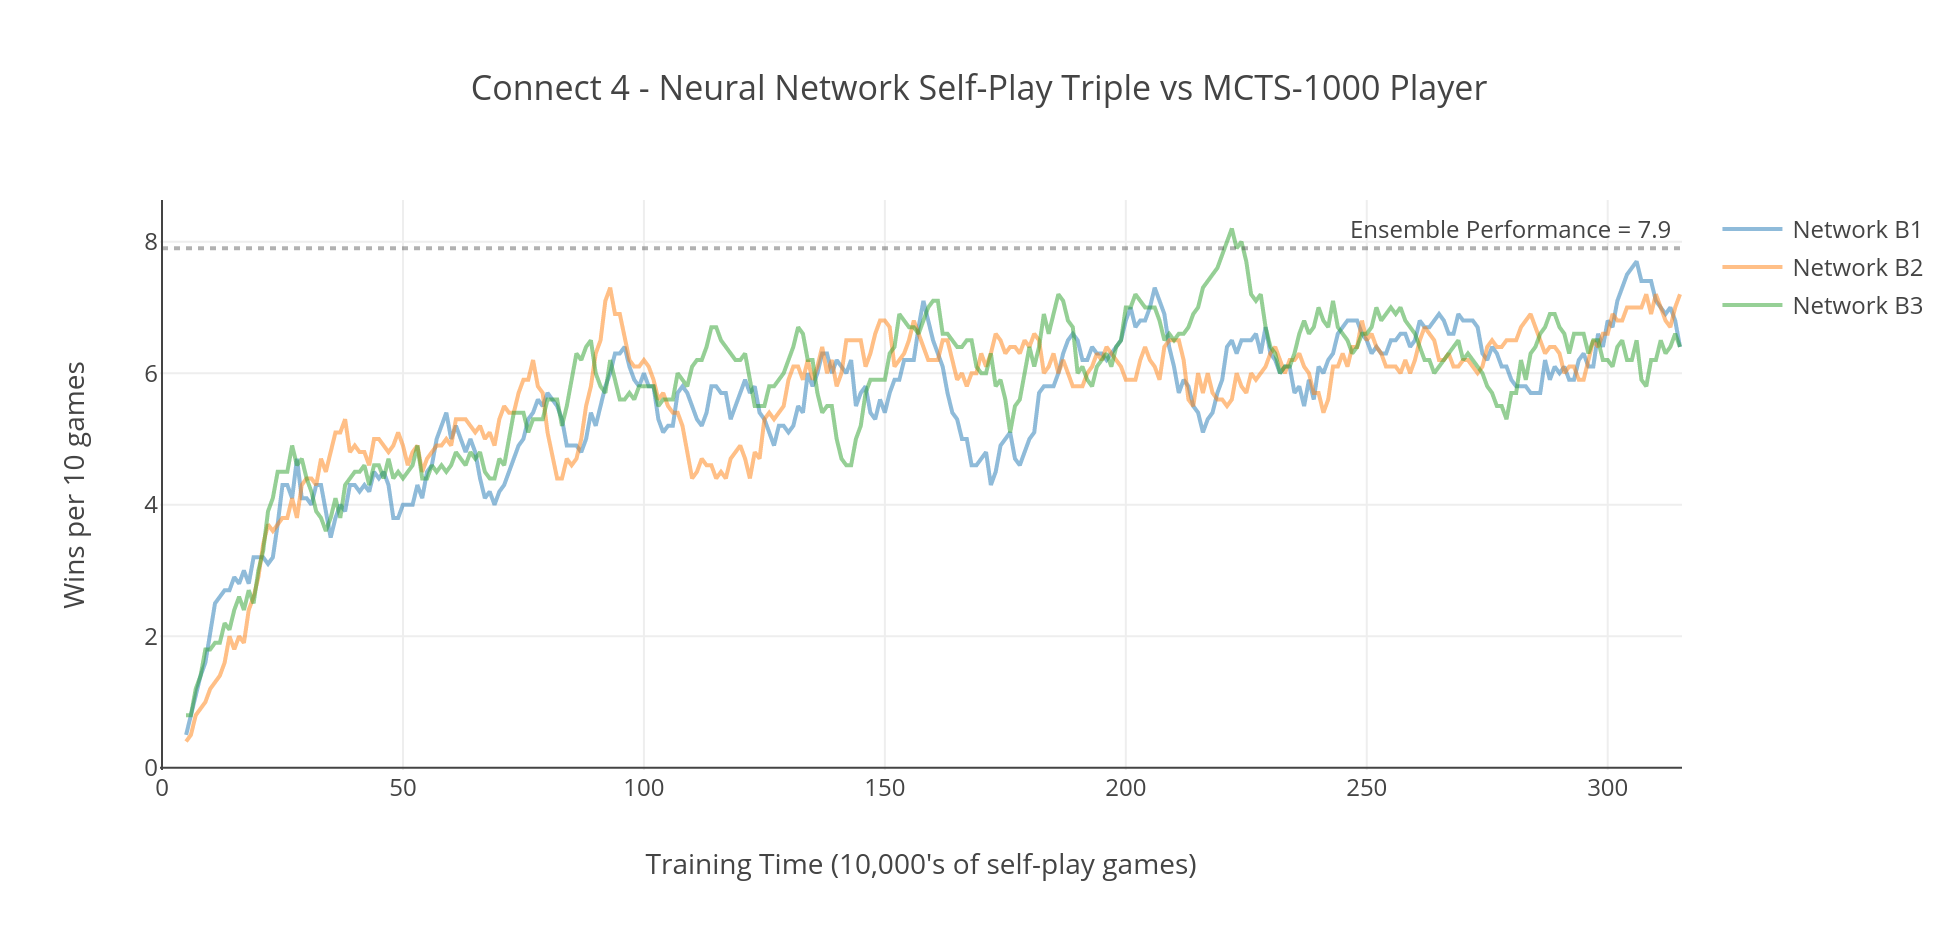 Graph showing a Neural Network ensemble playing against a MCTS-1000 Player in a game of Connect 4